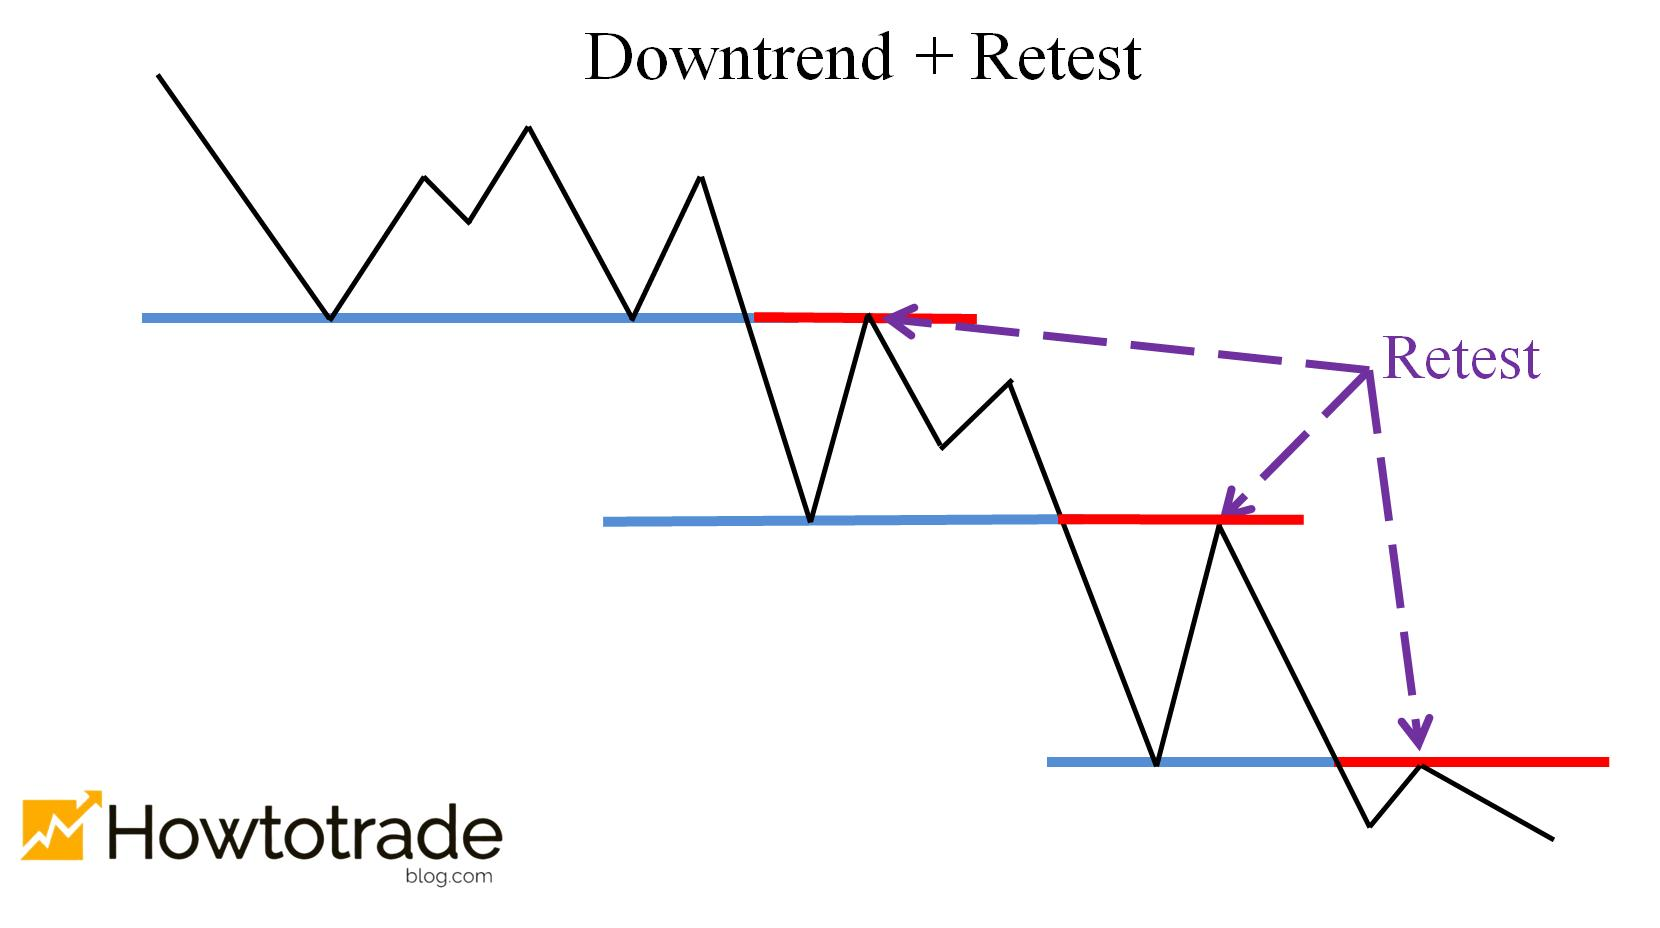 The price falls out of the trough in a downtrend and retests